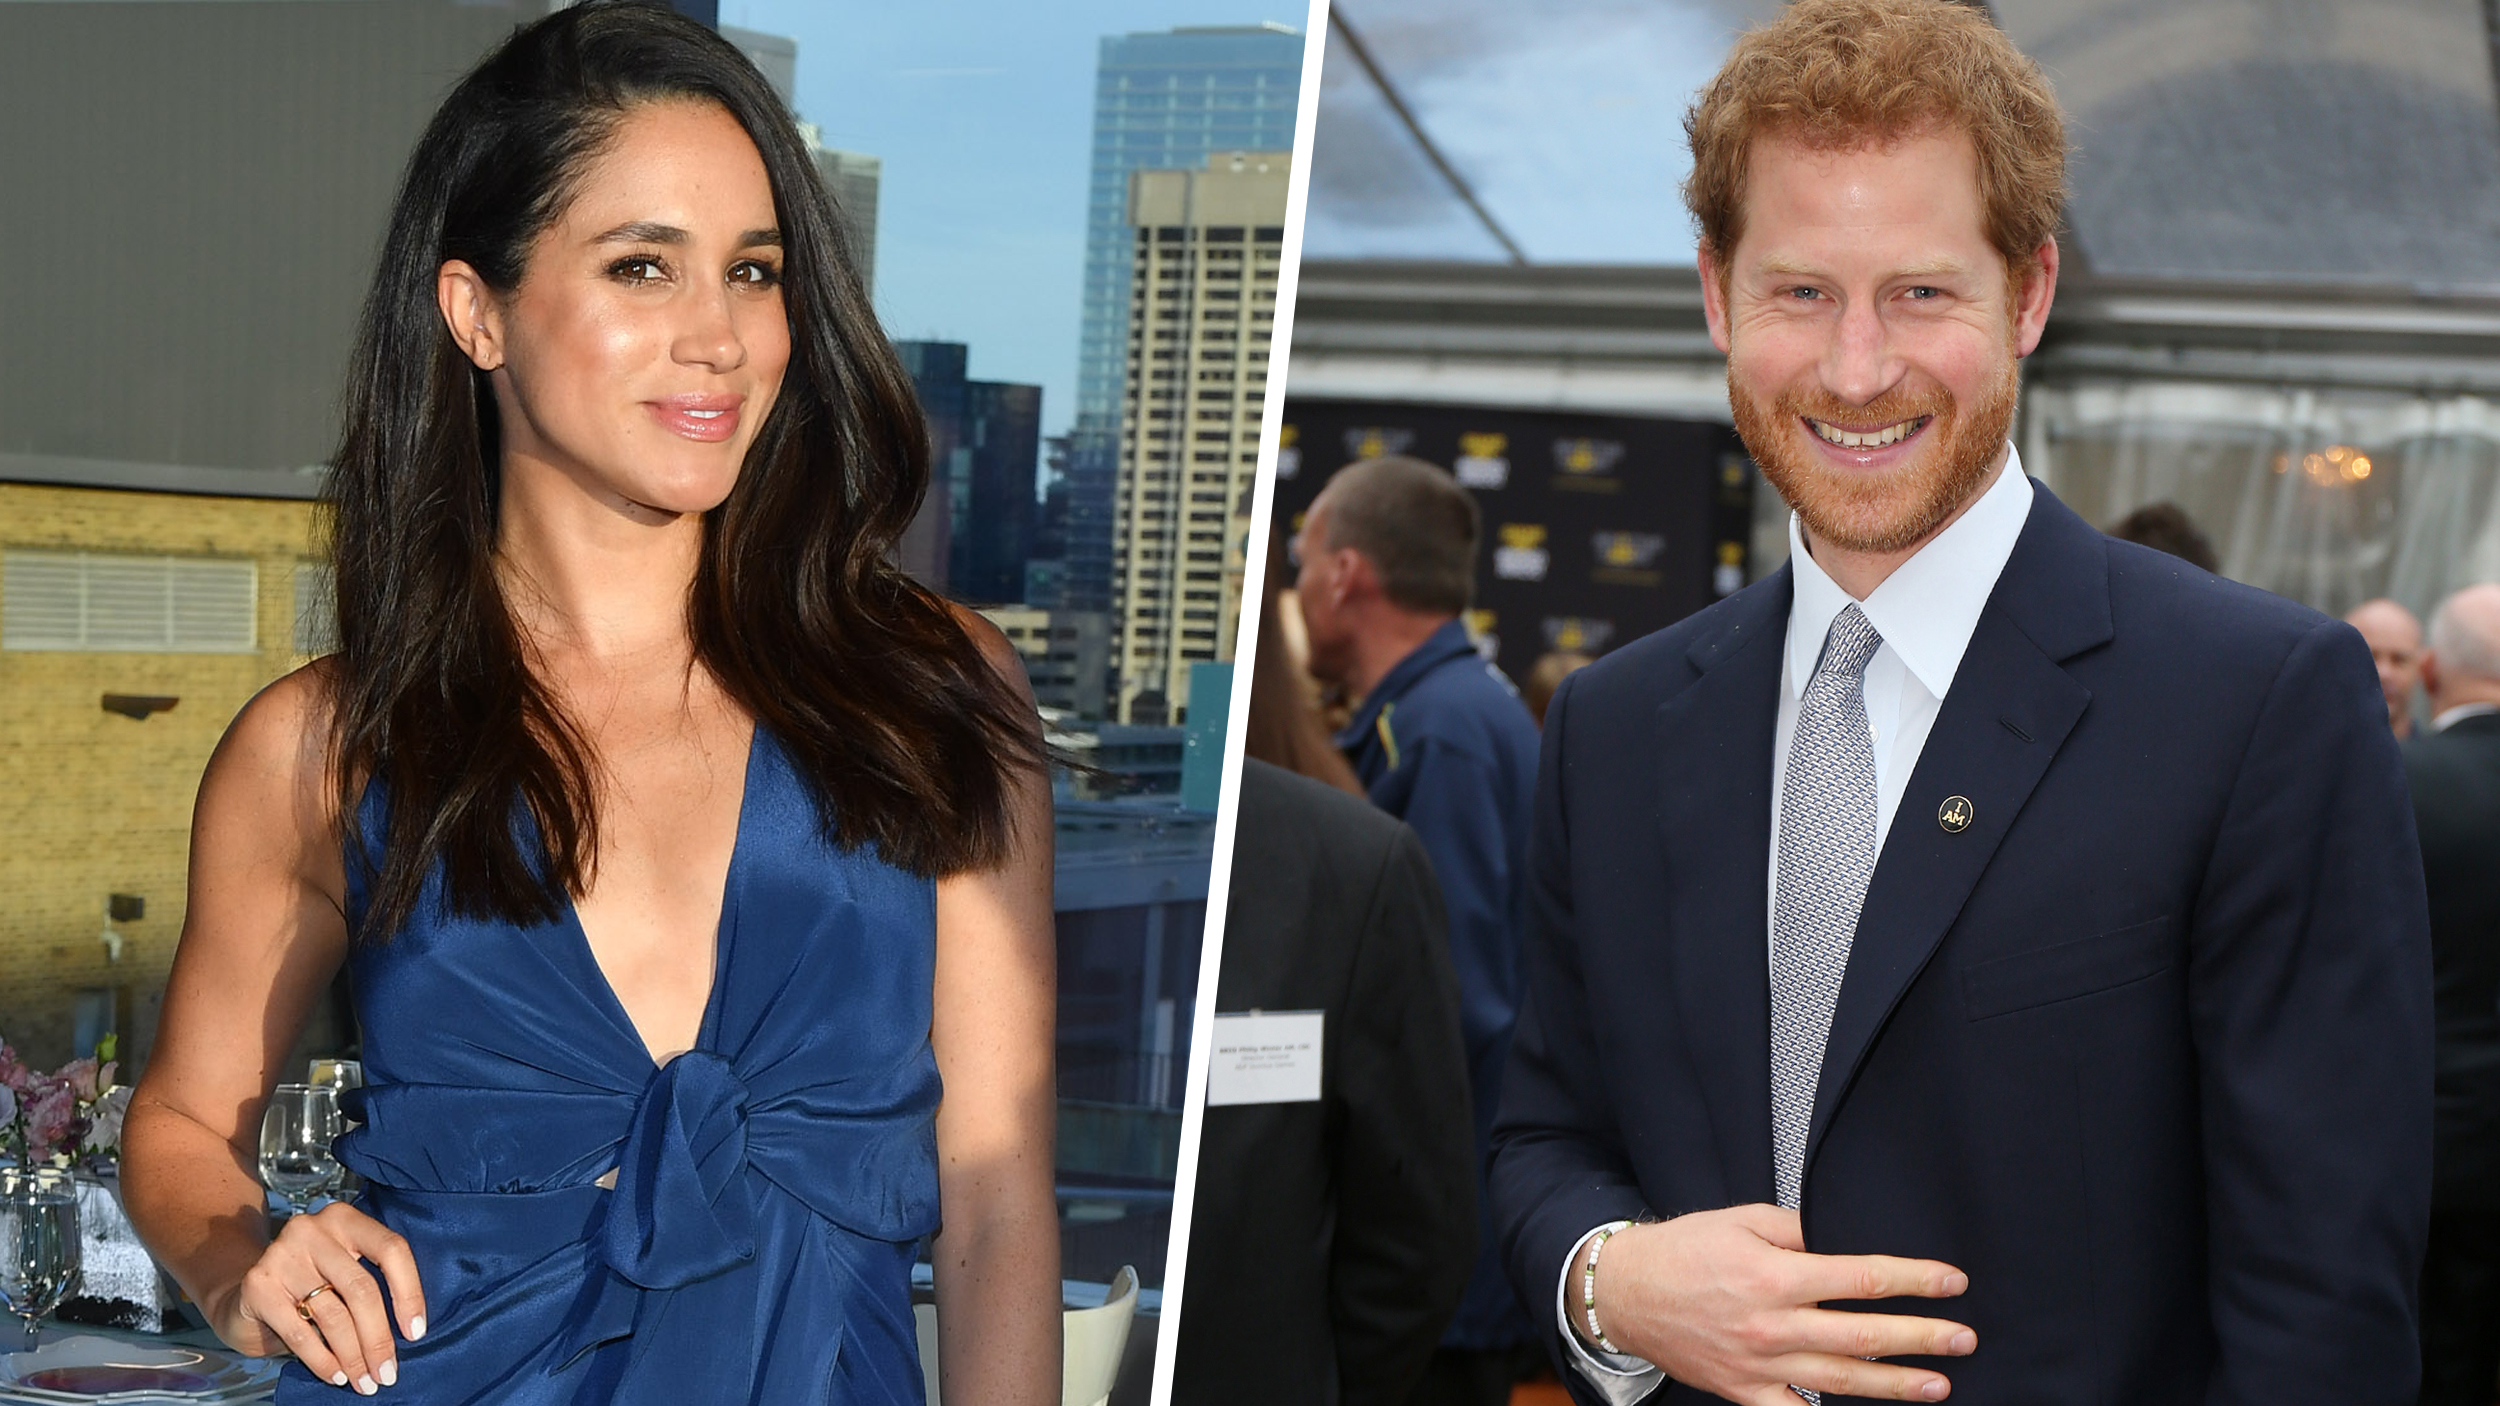 Meghan Markle stays mum on Prince Harry at ATX panel ...